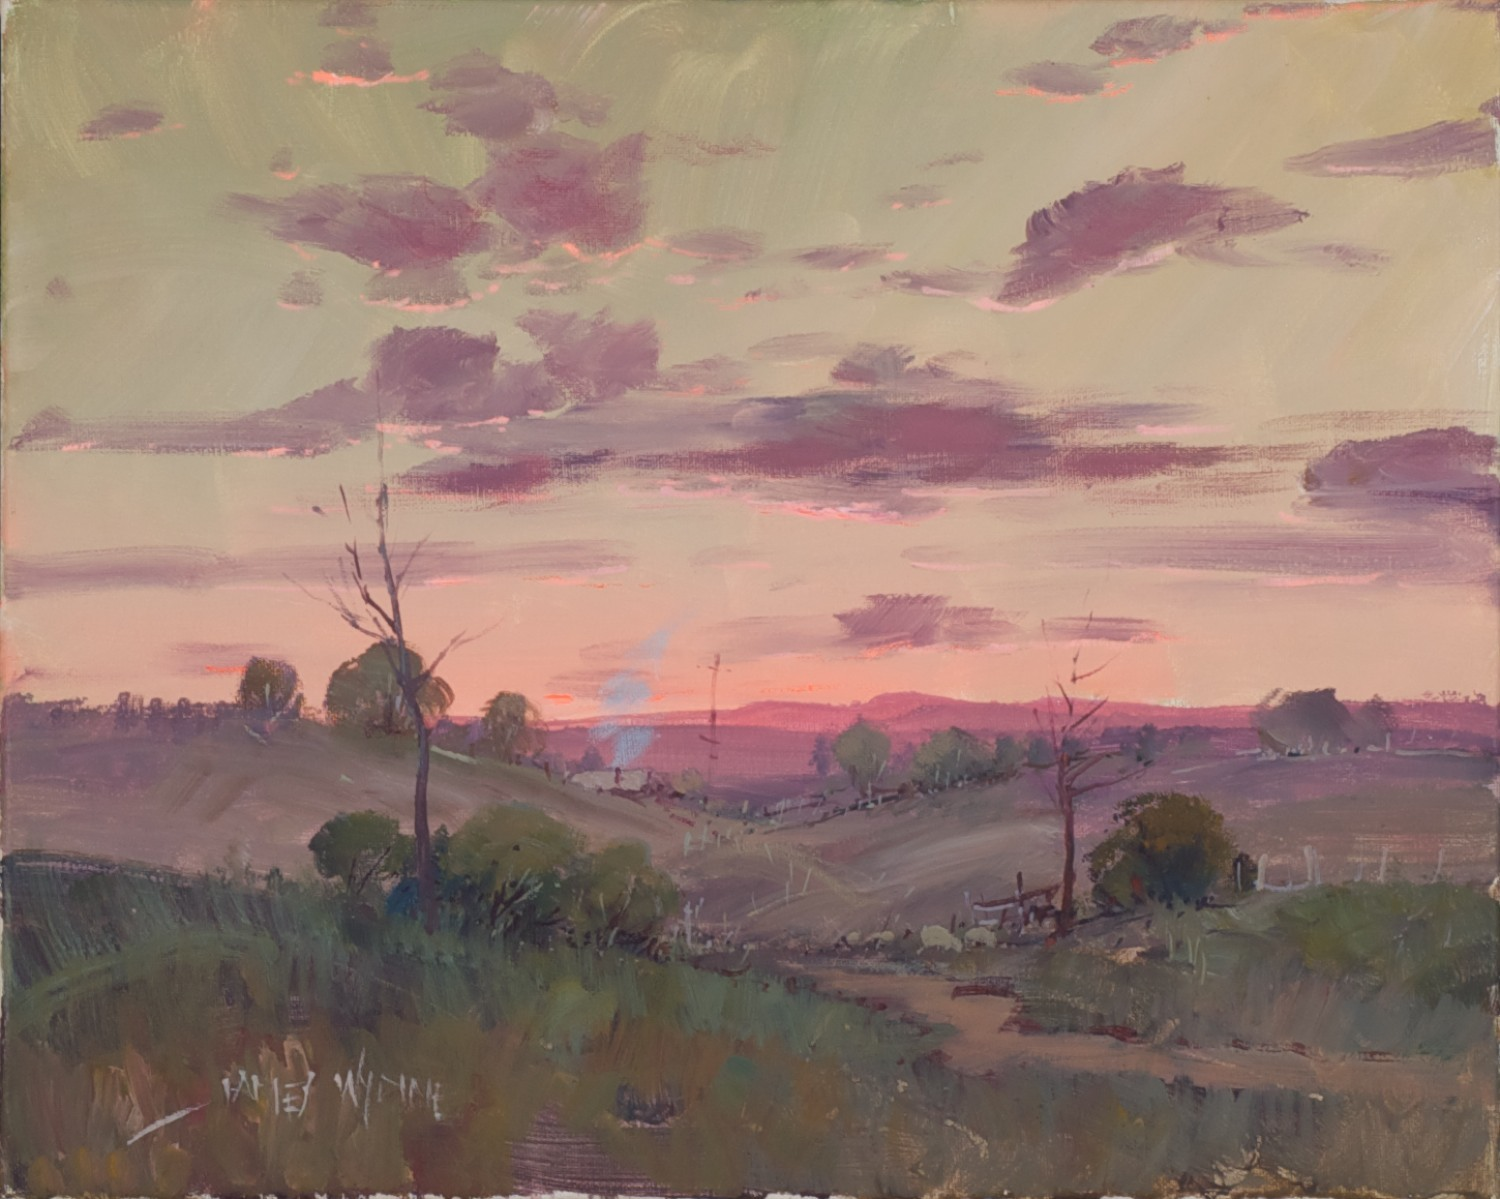 #7938. James Wynne. Late afternoon - Dusk. 40cm x 50cm. Was $1250 Now $750